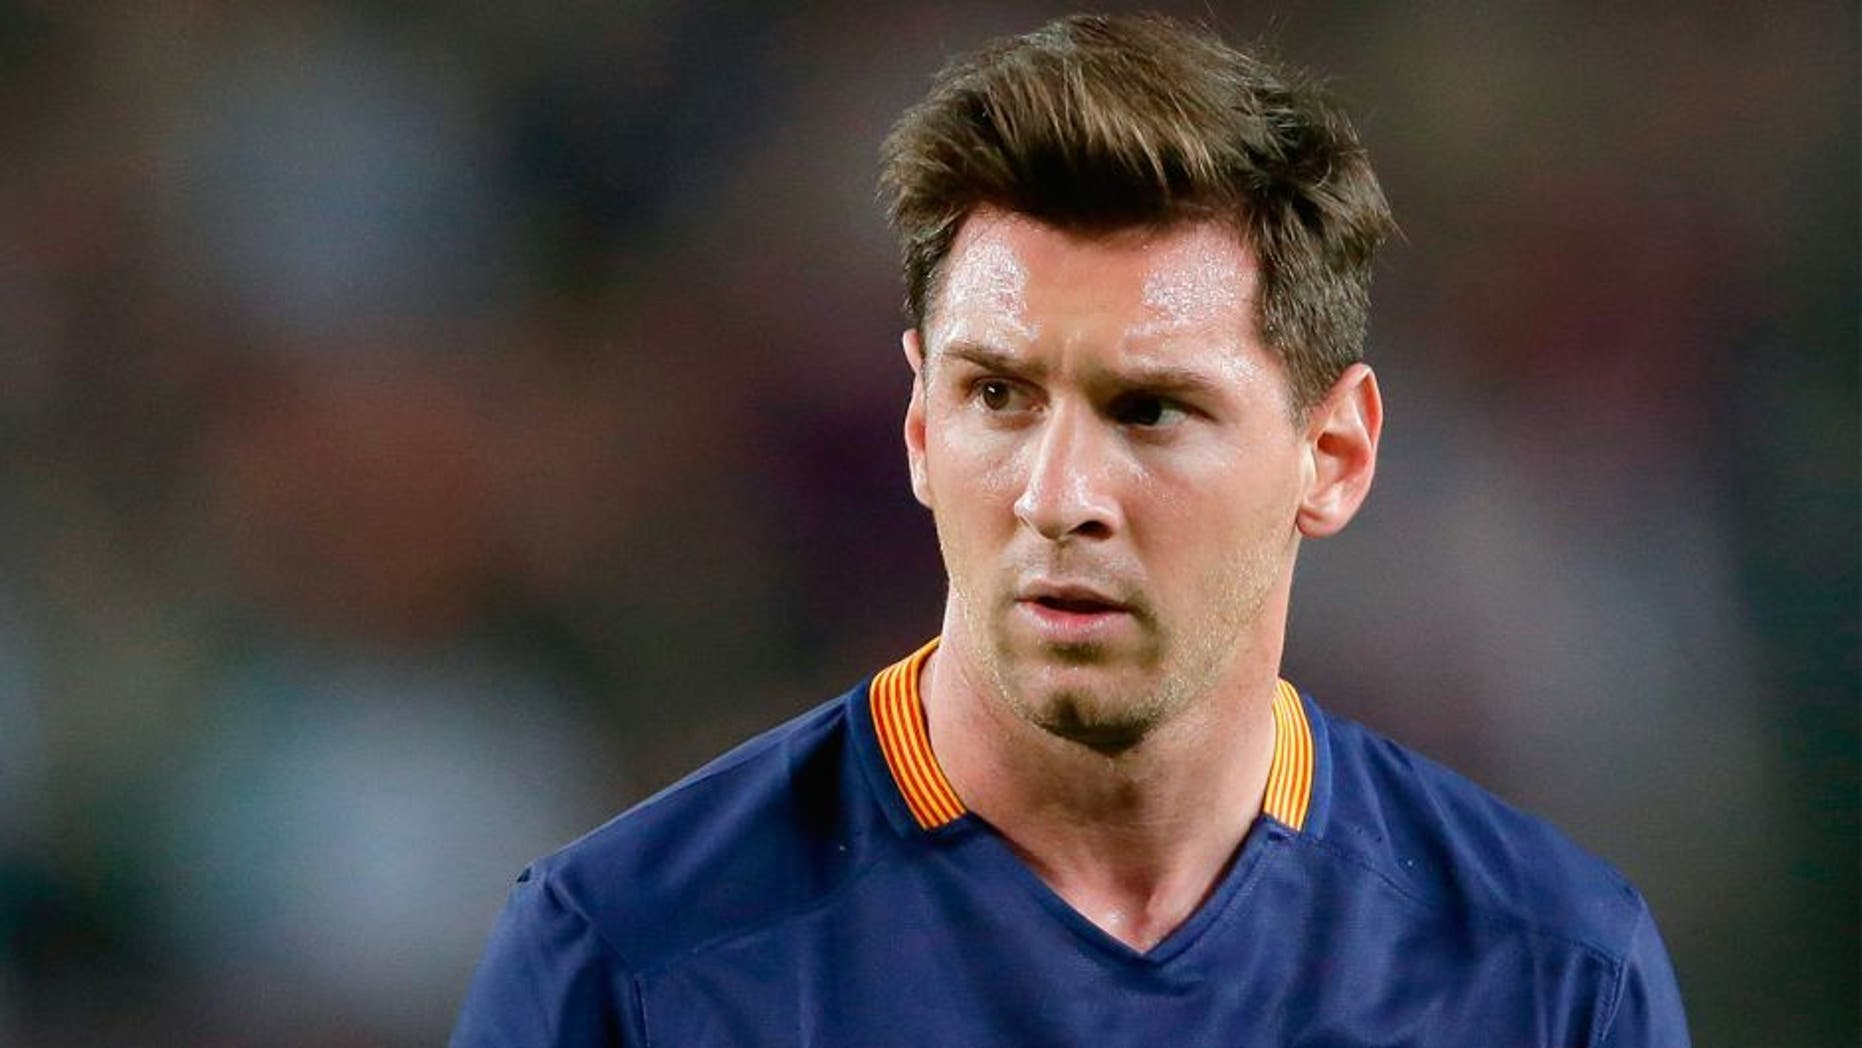 Lionel Messi of FC Barcelona during the Primera Division match between FC Barcelona and Levante UD on September 20, 2015 at Camp Nou stadium in Barcelona, Spain.(Photo by VI Images via Getty Images)